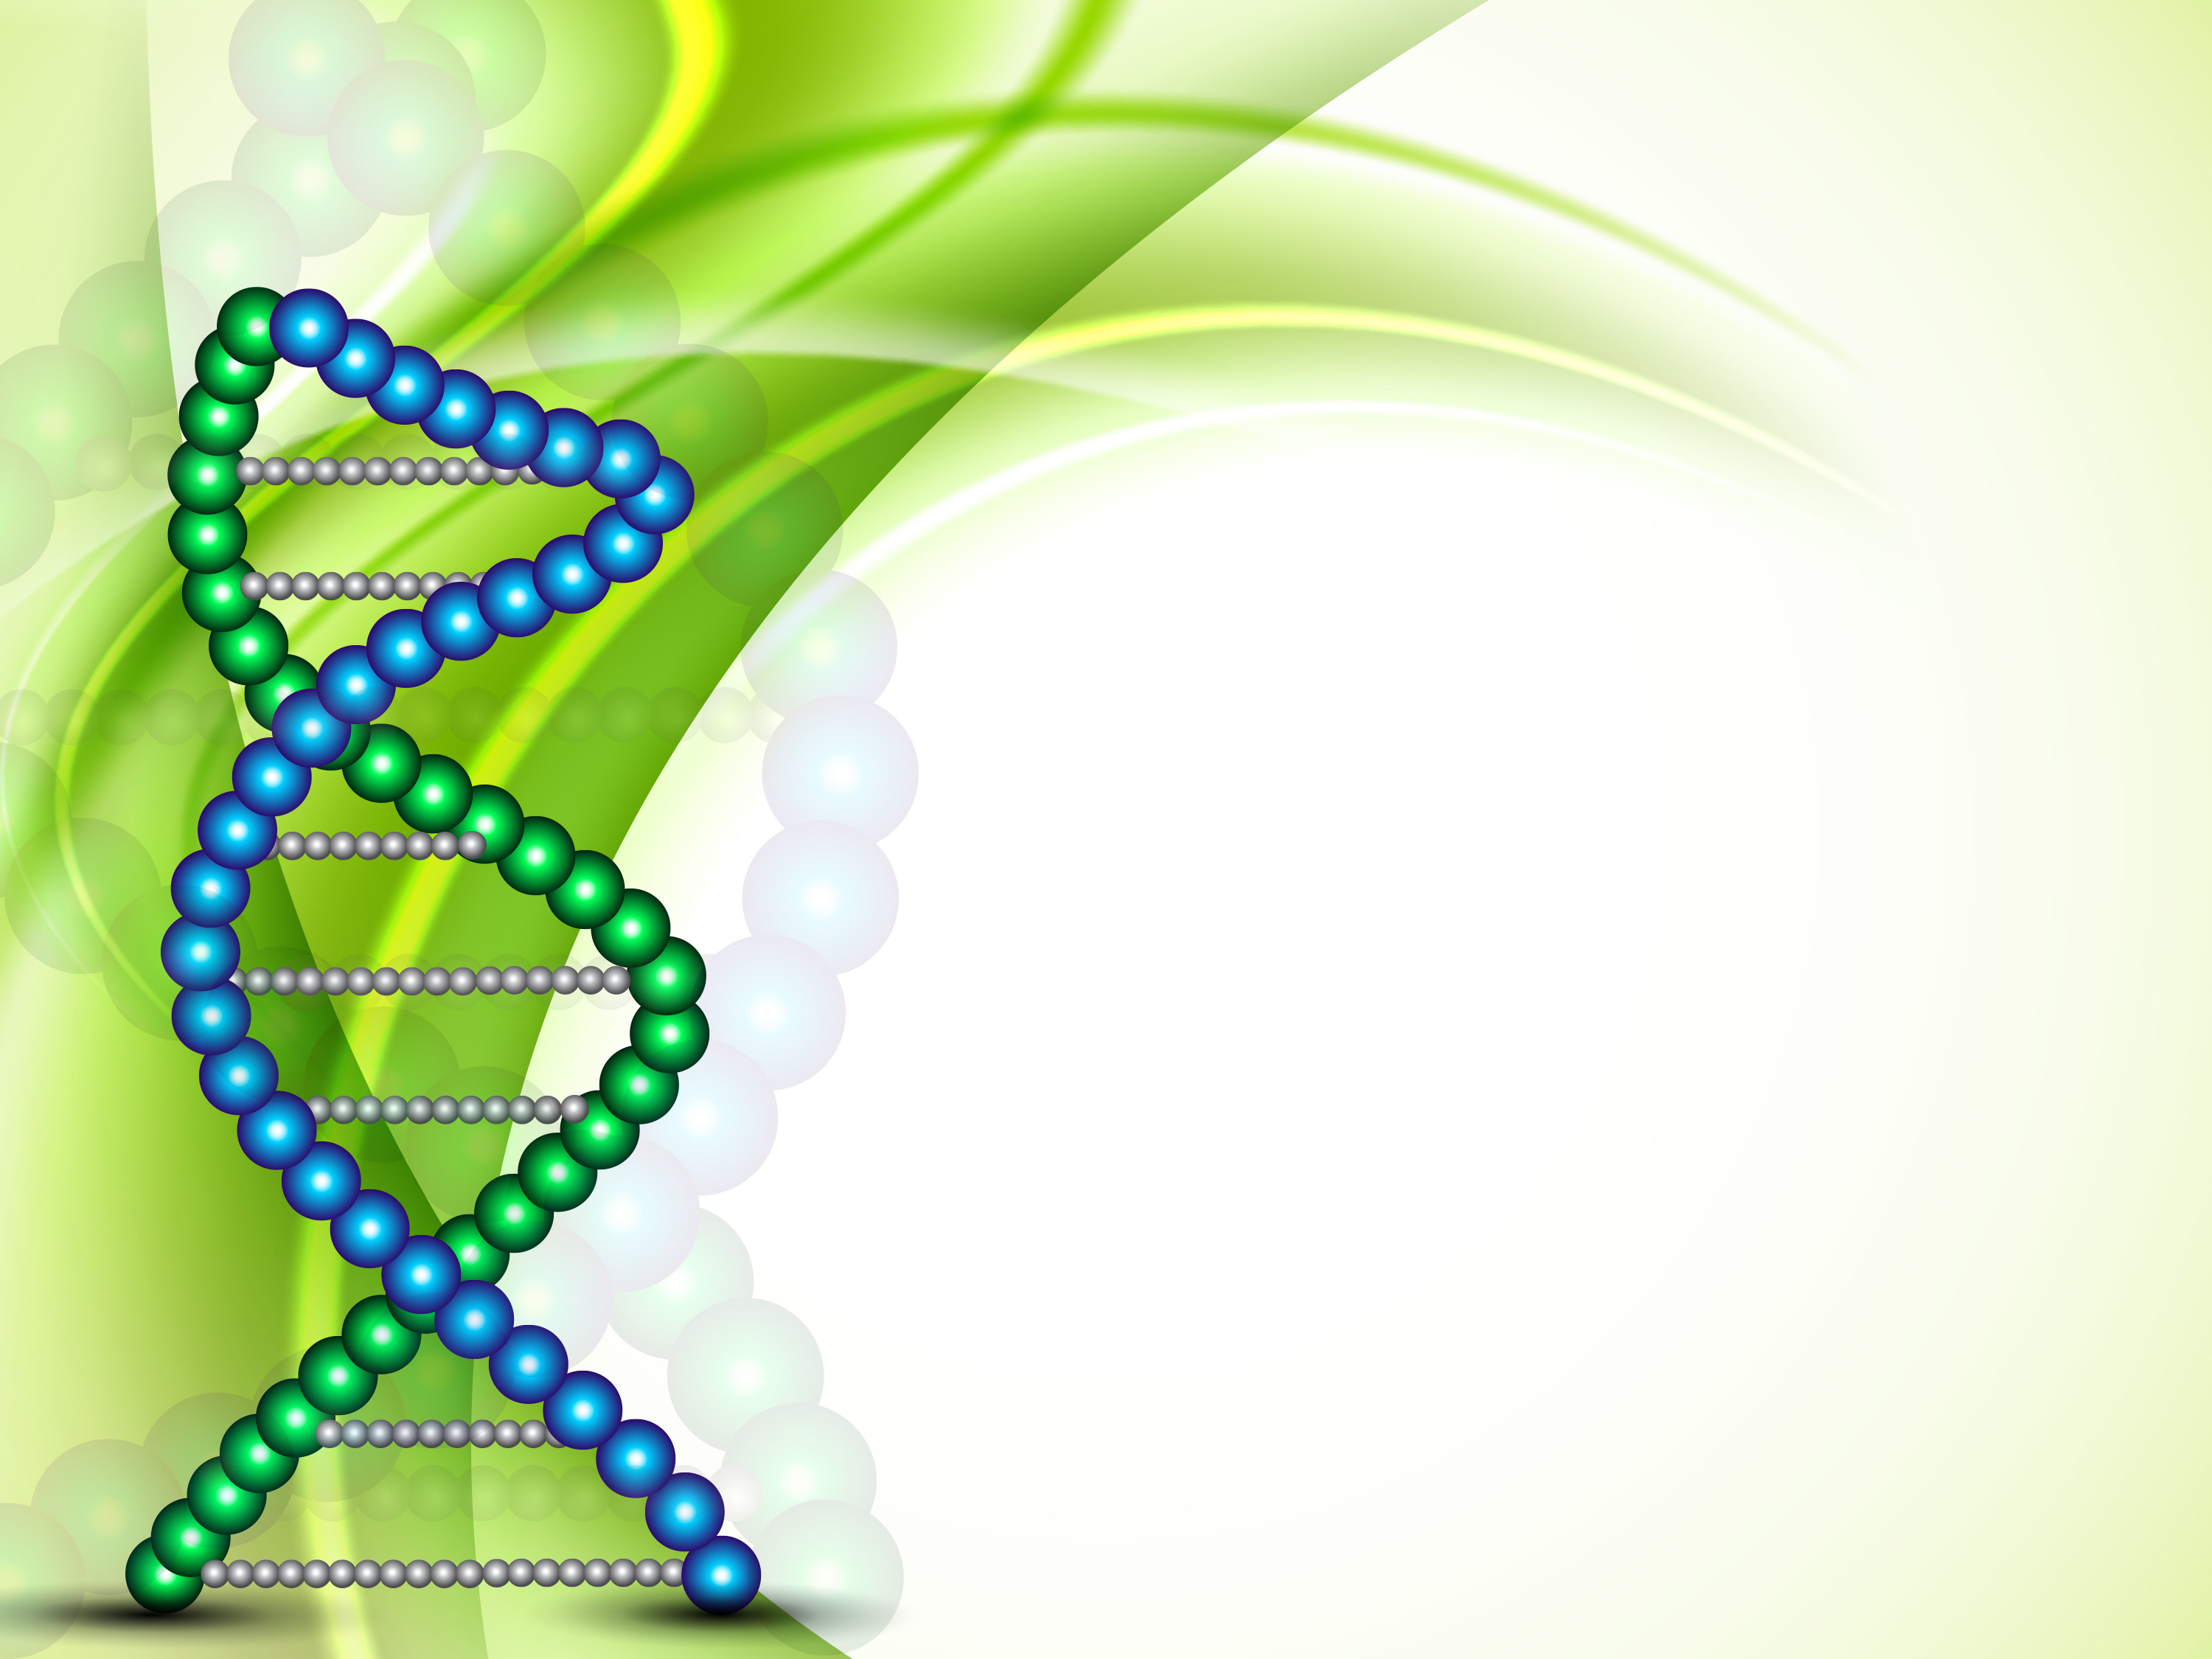 DNA strand in green and blue